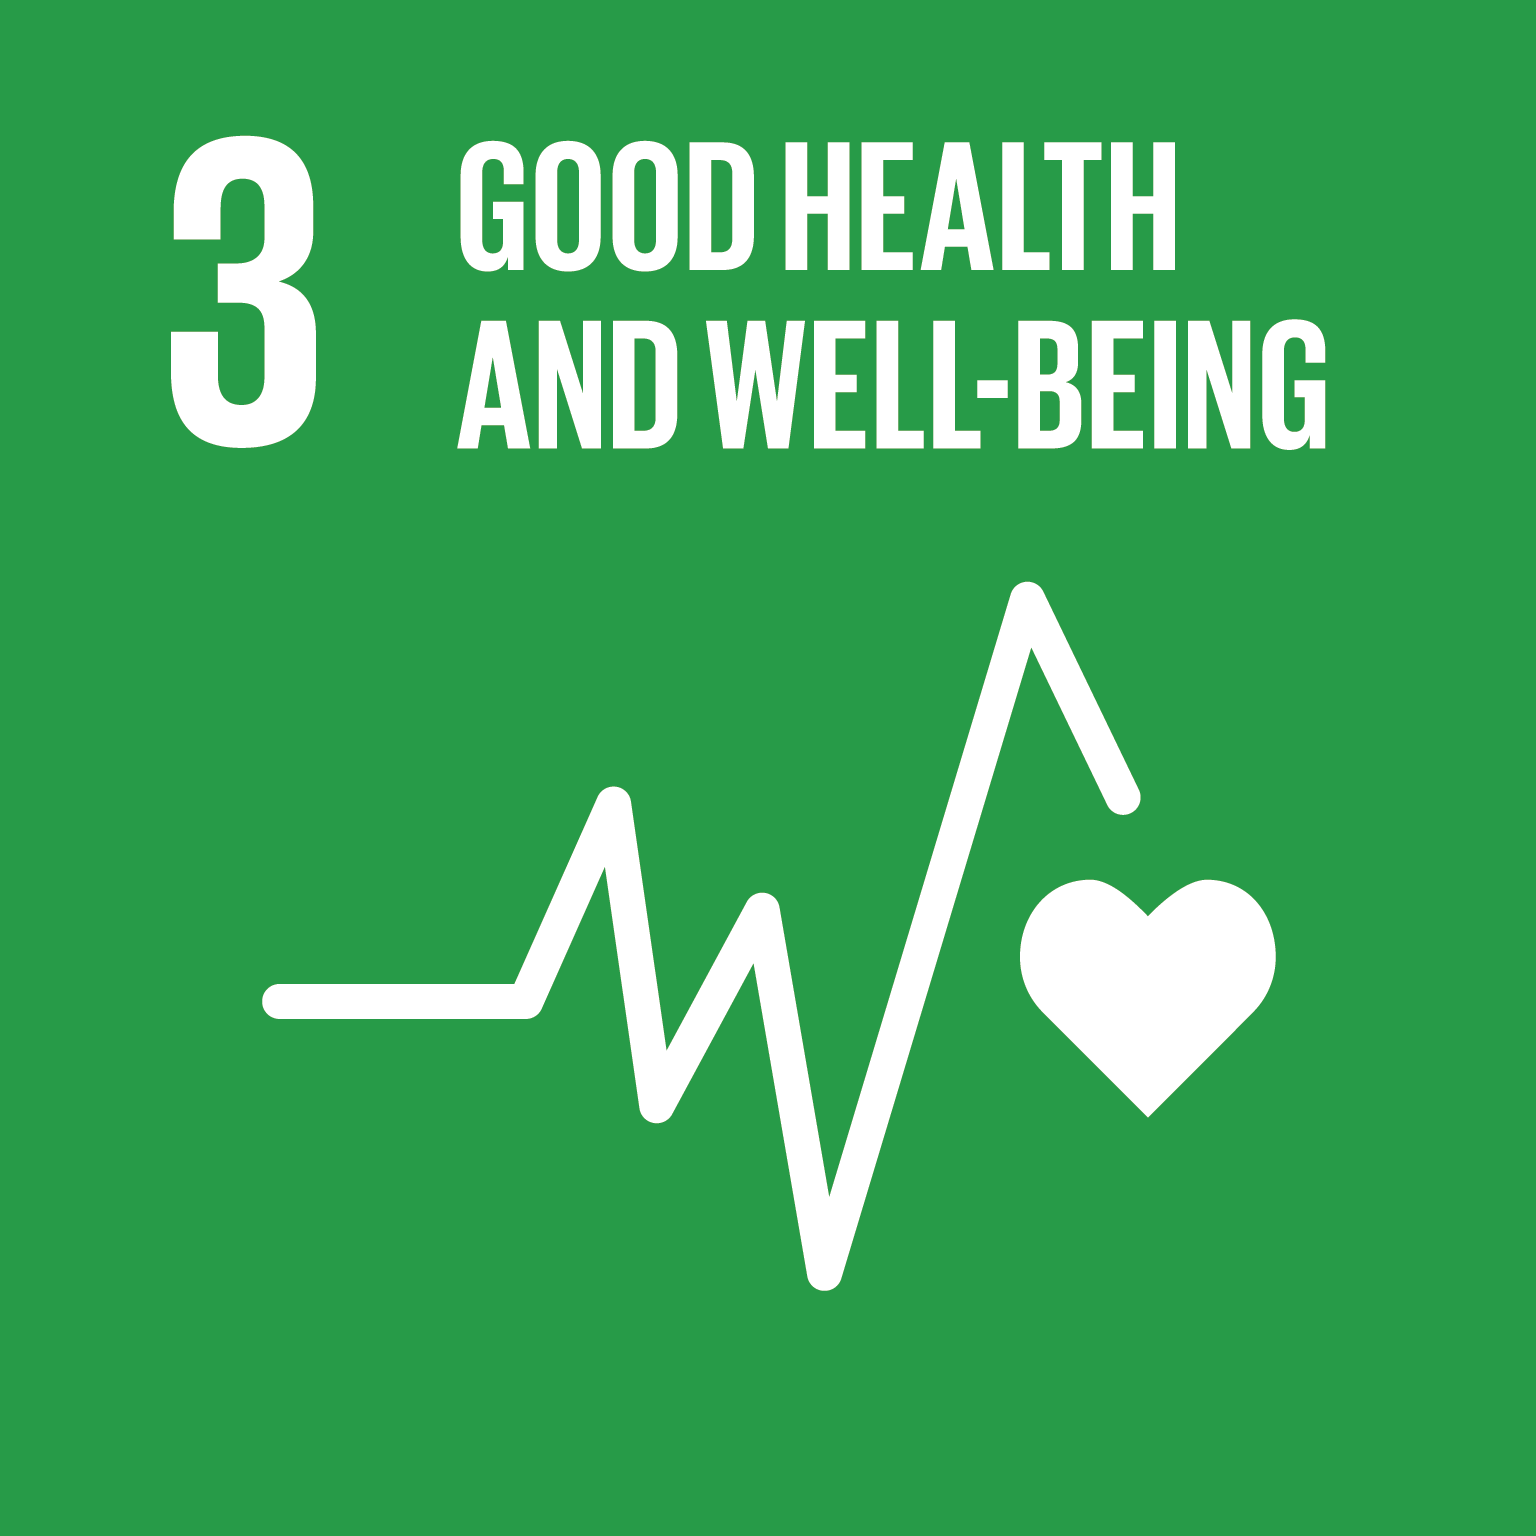 Goal 3 – Good health and well-being